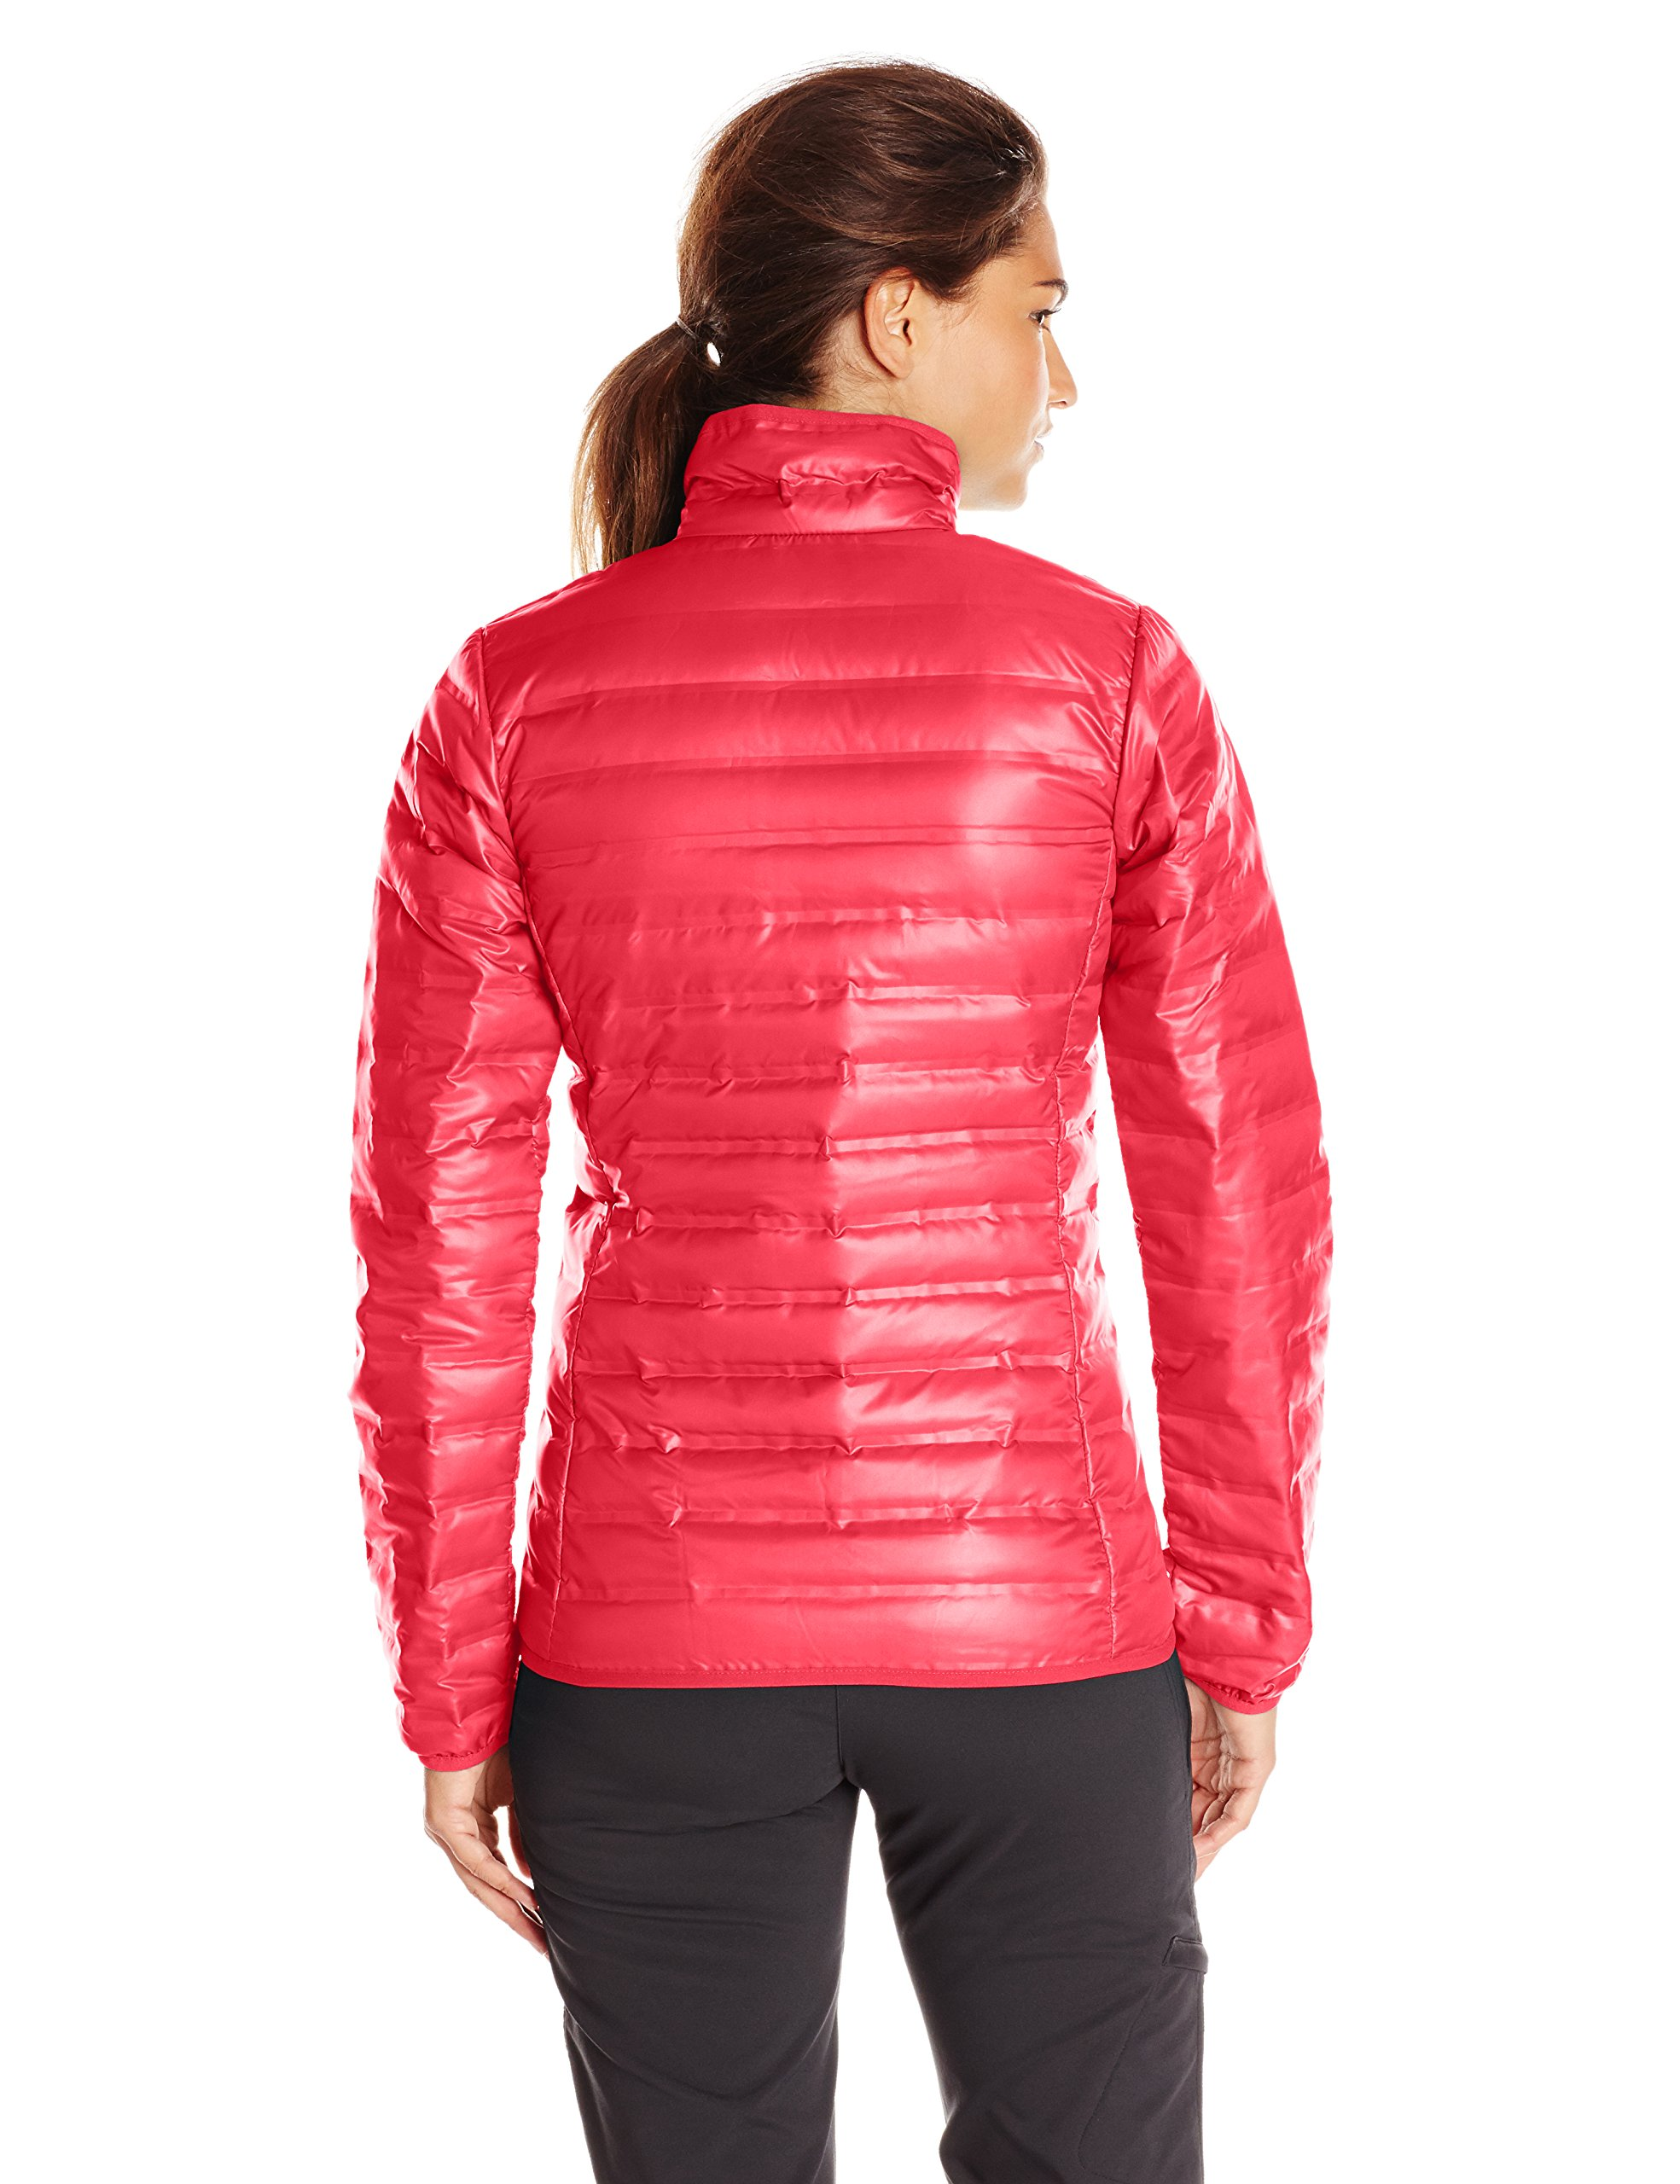 Columbia Women's Flash Forward Down Jacket, Red Camellia/Spray, Small by Columbia (Image #2)